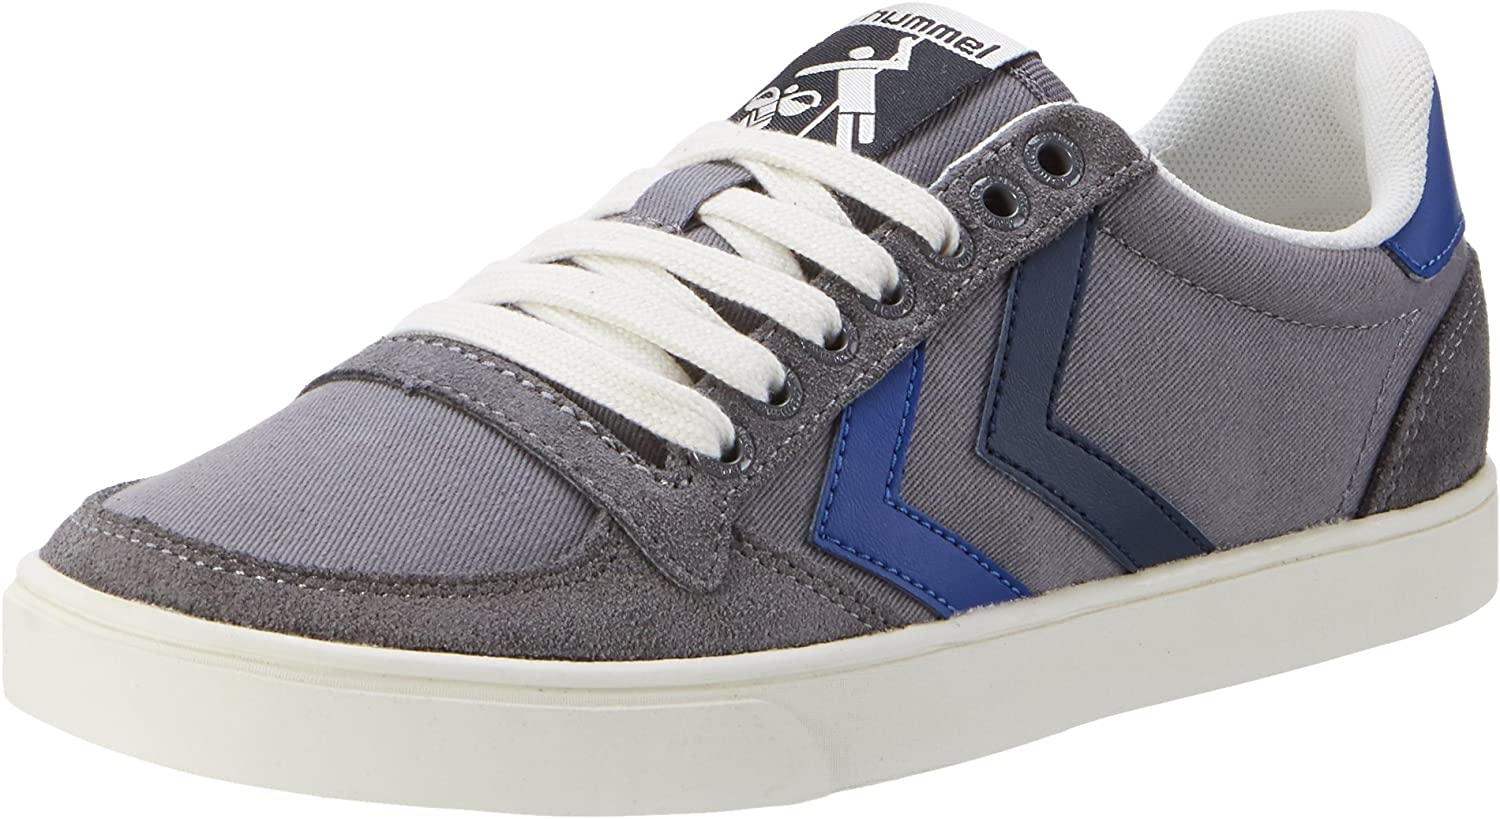 Hummel Unisex Adults' Sl. Stadil Duo Canvas Low-Top Sneakers